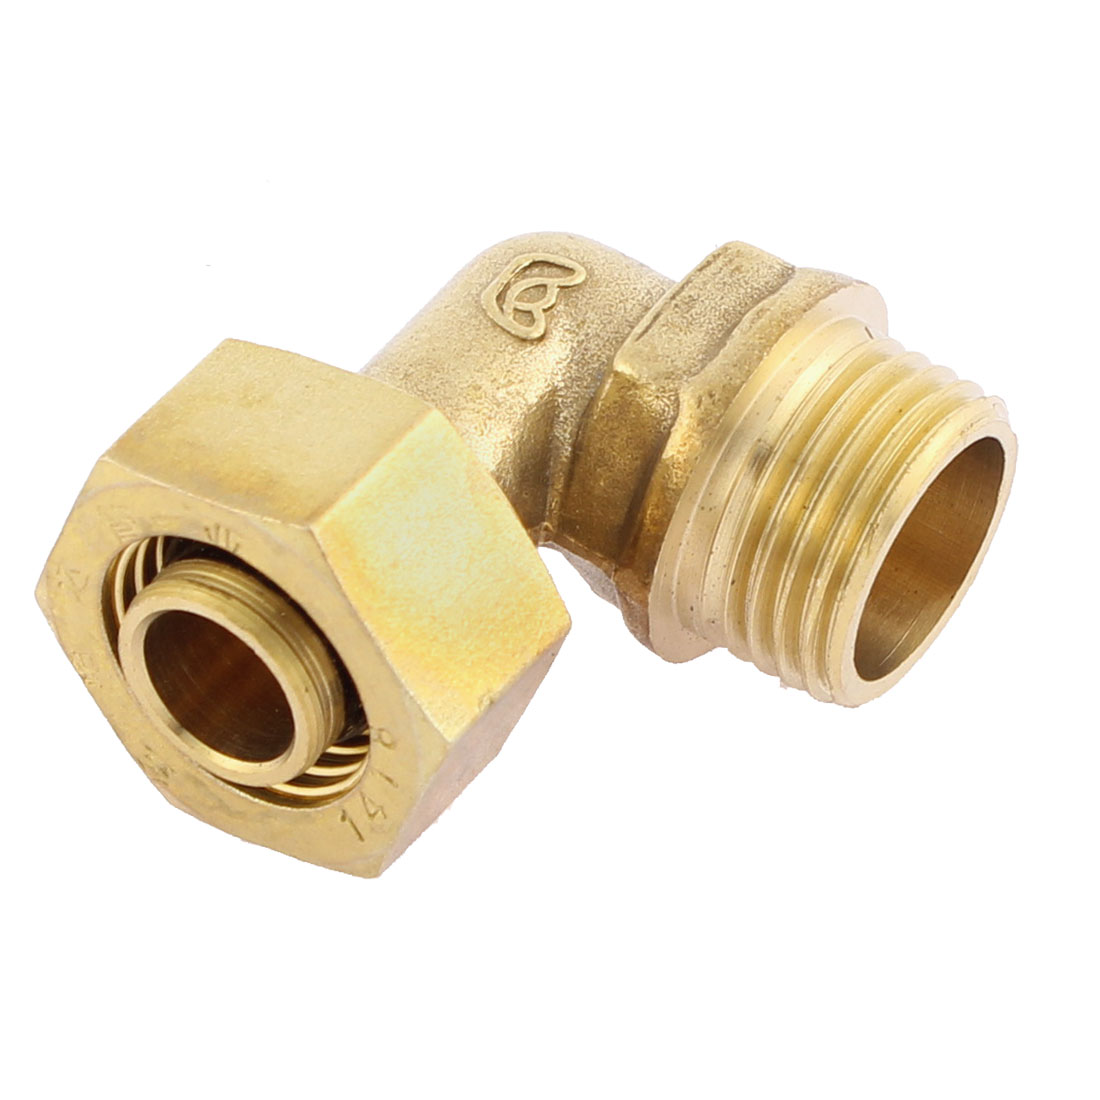 1/2BSP Male Thread Brass Elbow Hex Nipple Quick Coupler Connector